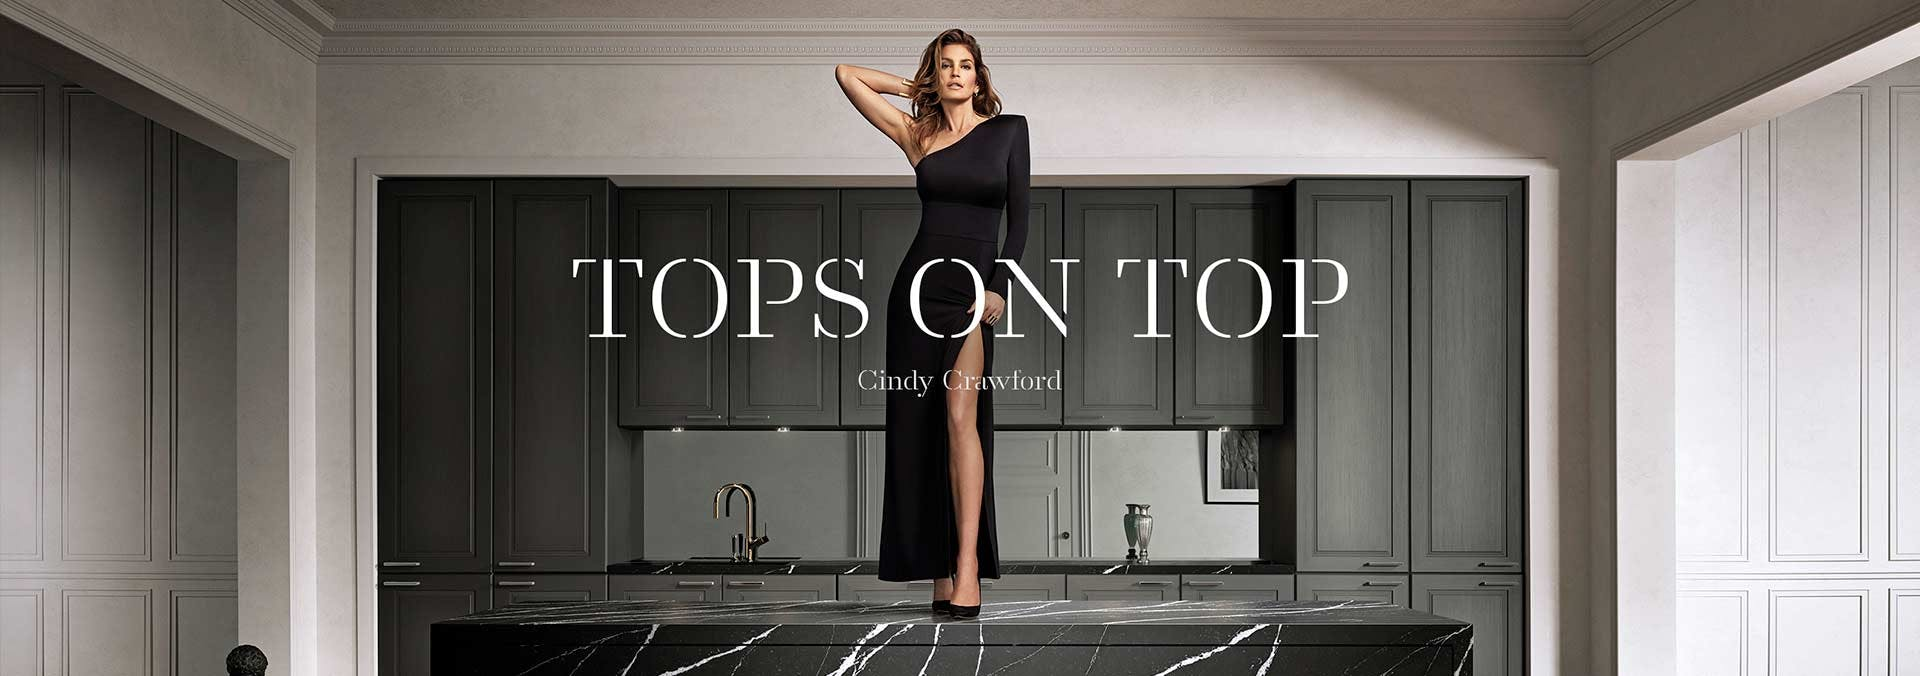 Tops on Top